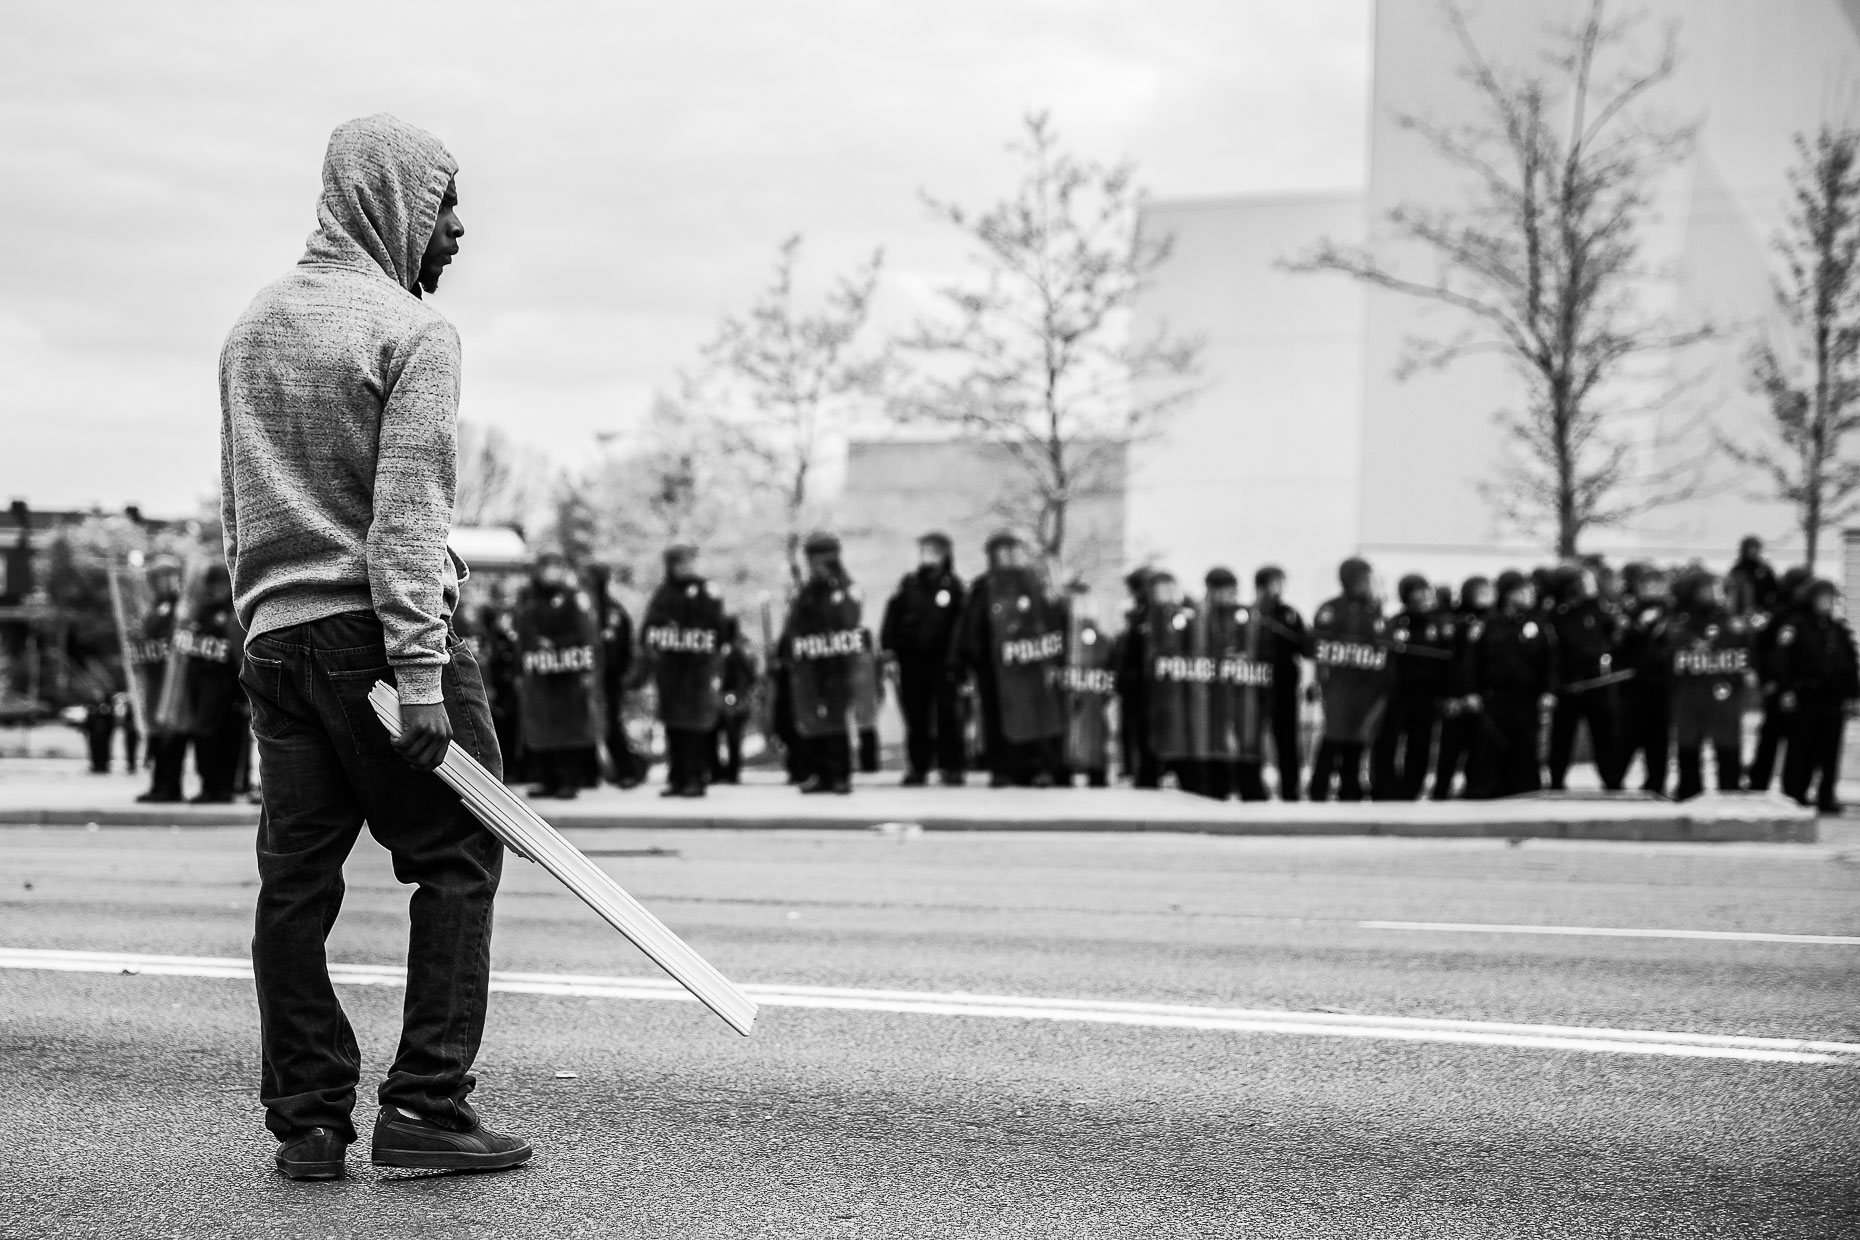 Baltimore Responds - The Baltimore Uprising - Photojournalism 24